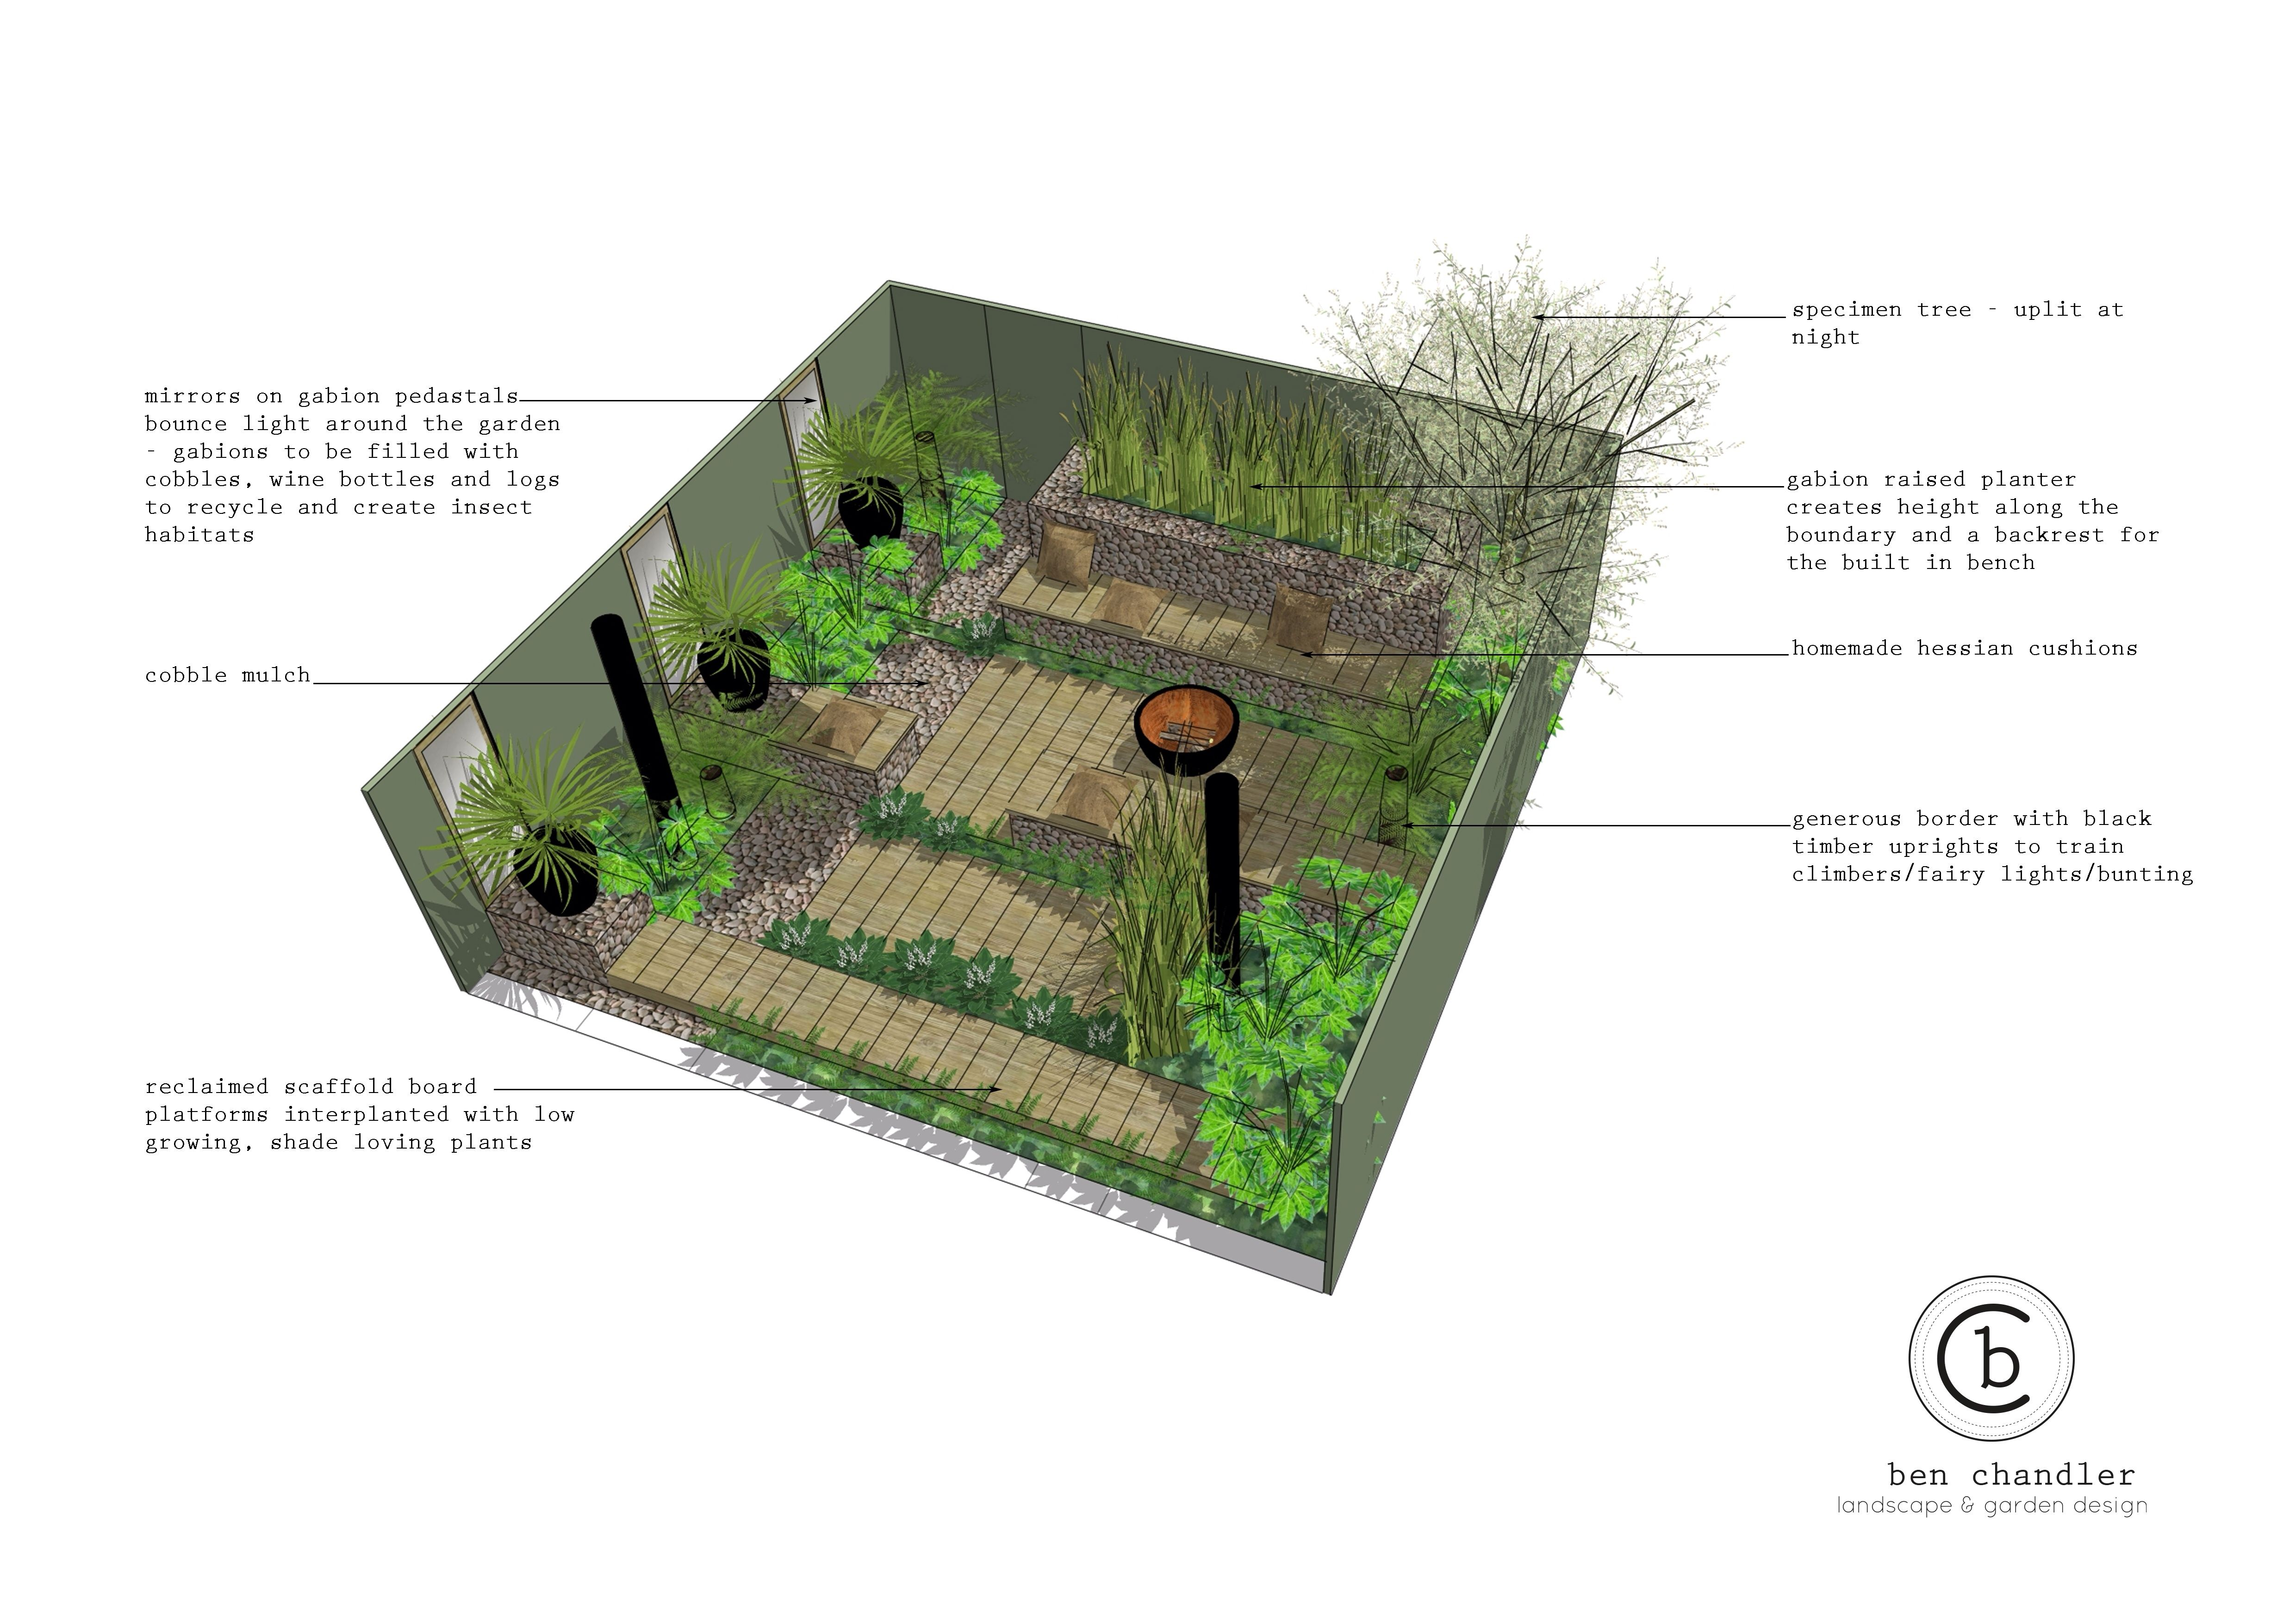 Pin by kerry neale on garden plans pinterest for Garden design ideas north facing